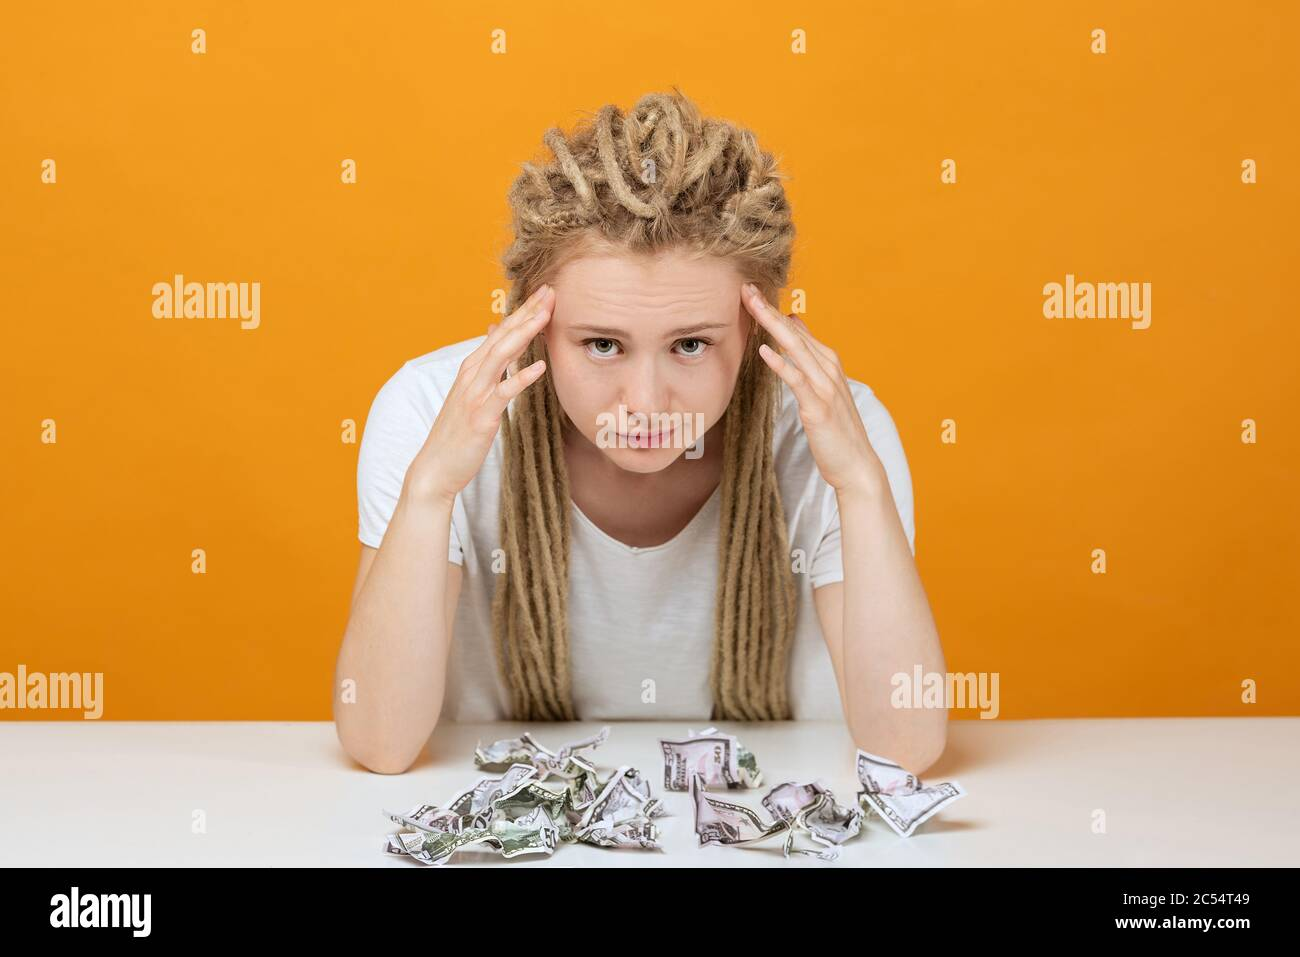 girl with financial problems sits at table, hands holding his head, crumpled bank notes lie on the table Stock Photo